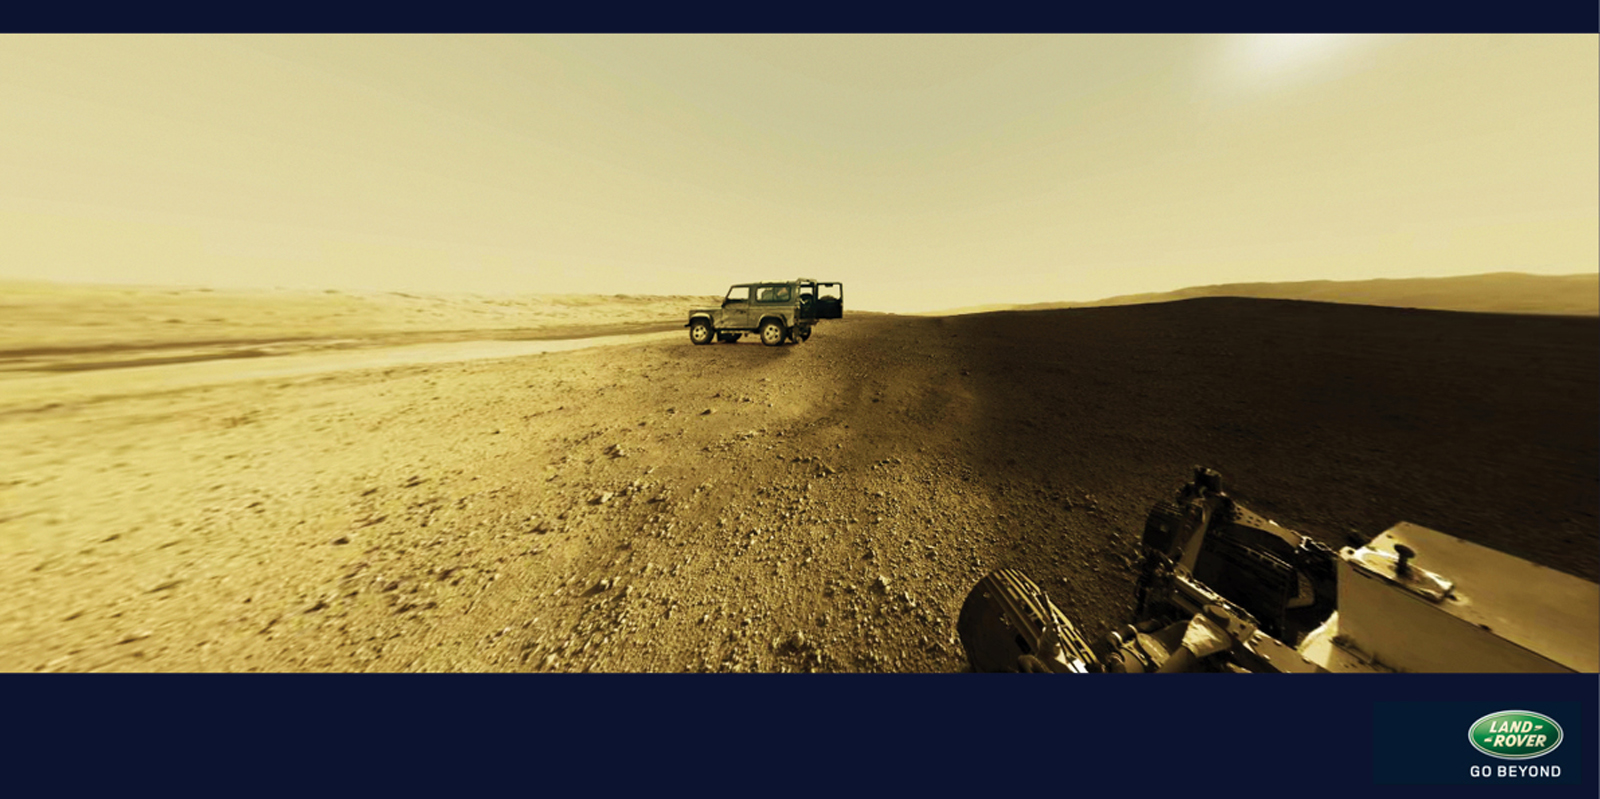 Print ad: Land Rover Defender: Curiosity meets Land Rover